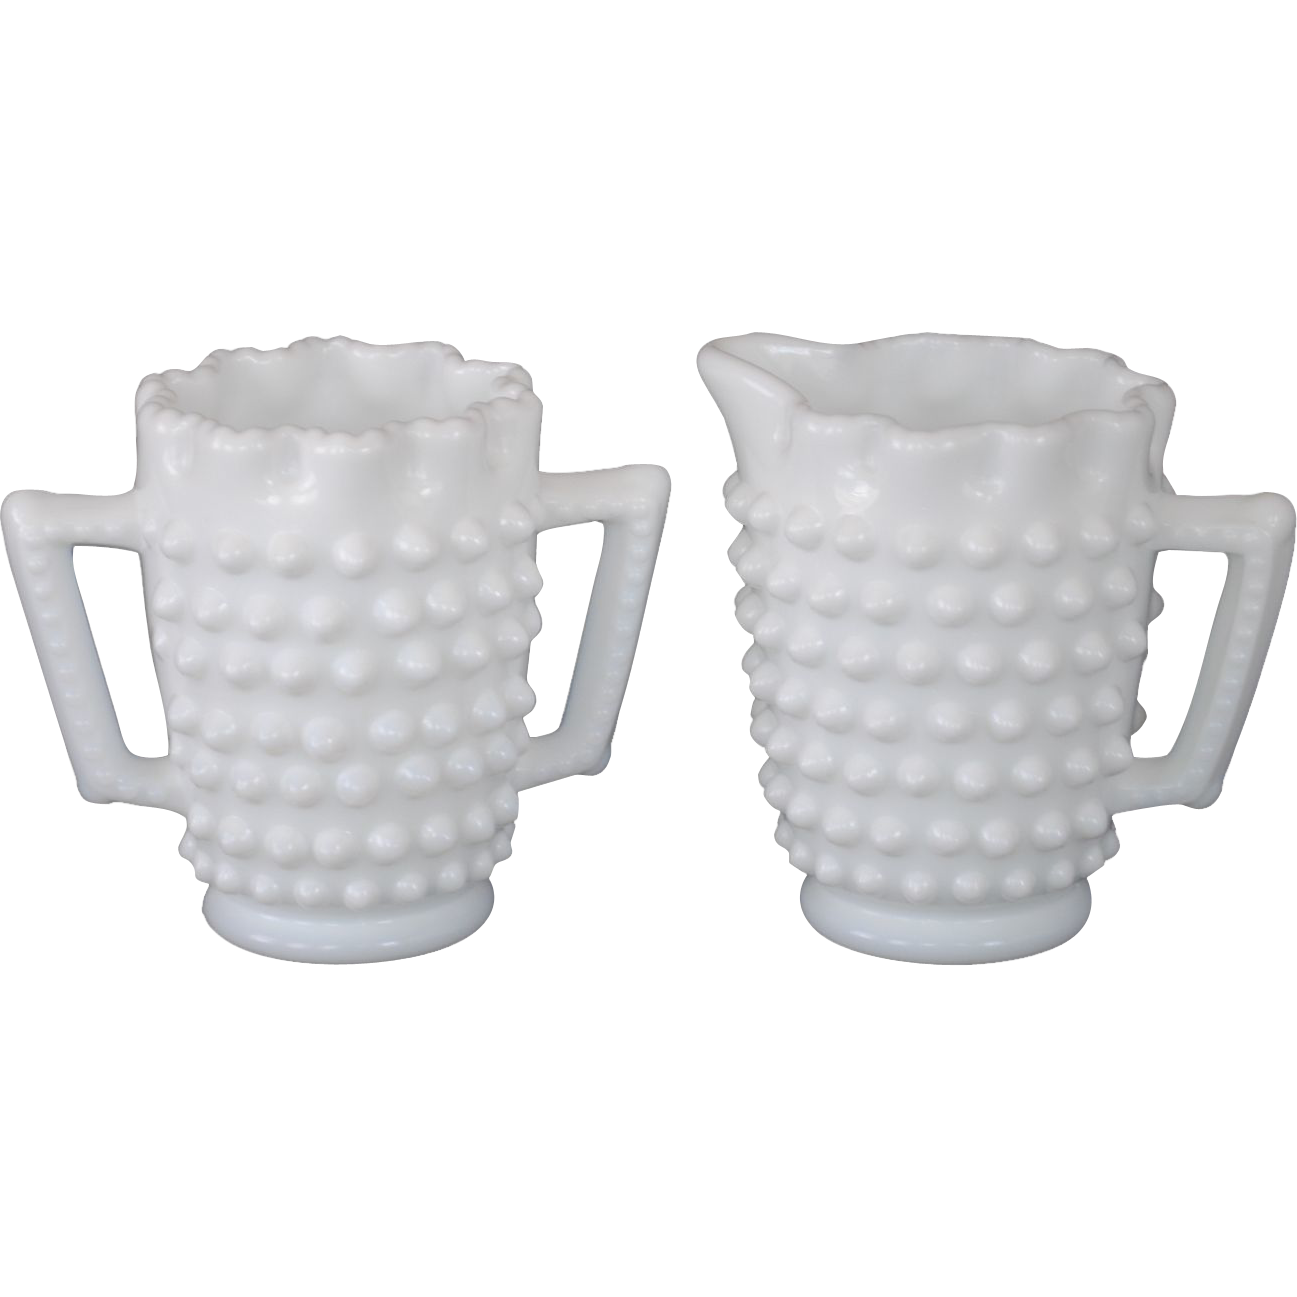 Fenton White Hobnail Milk Glass Mini Creamer and Sugar